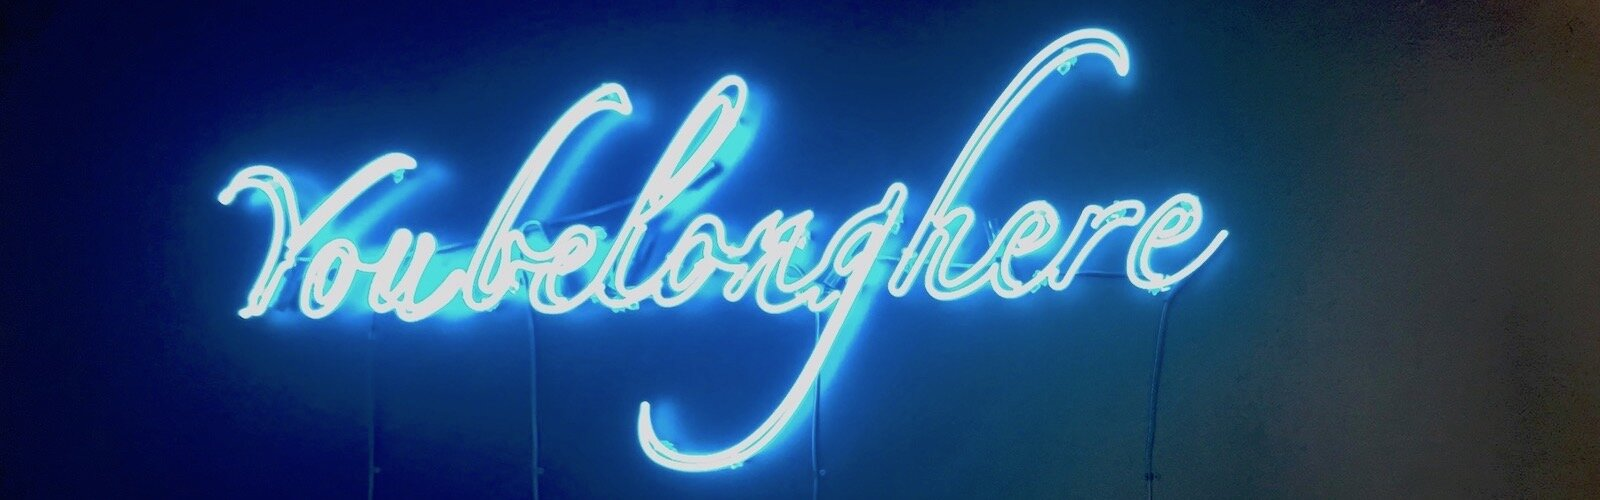 You Belong Here neon light artwork on display at Scarfone/Hartley Gallery in Tampa.